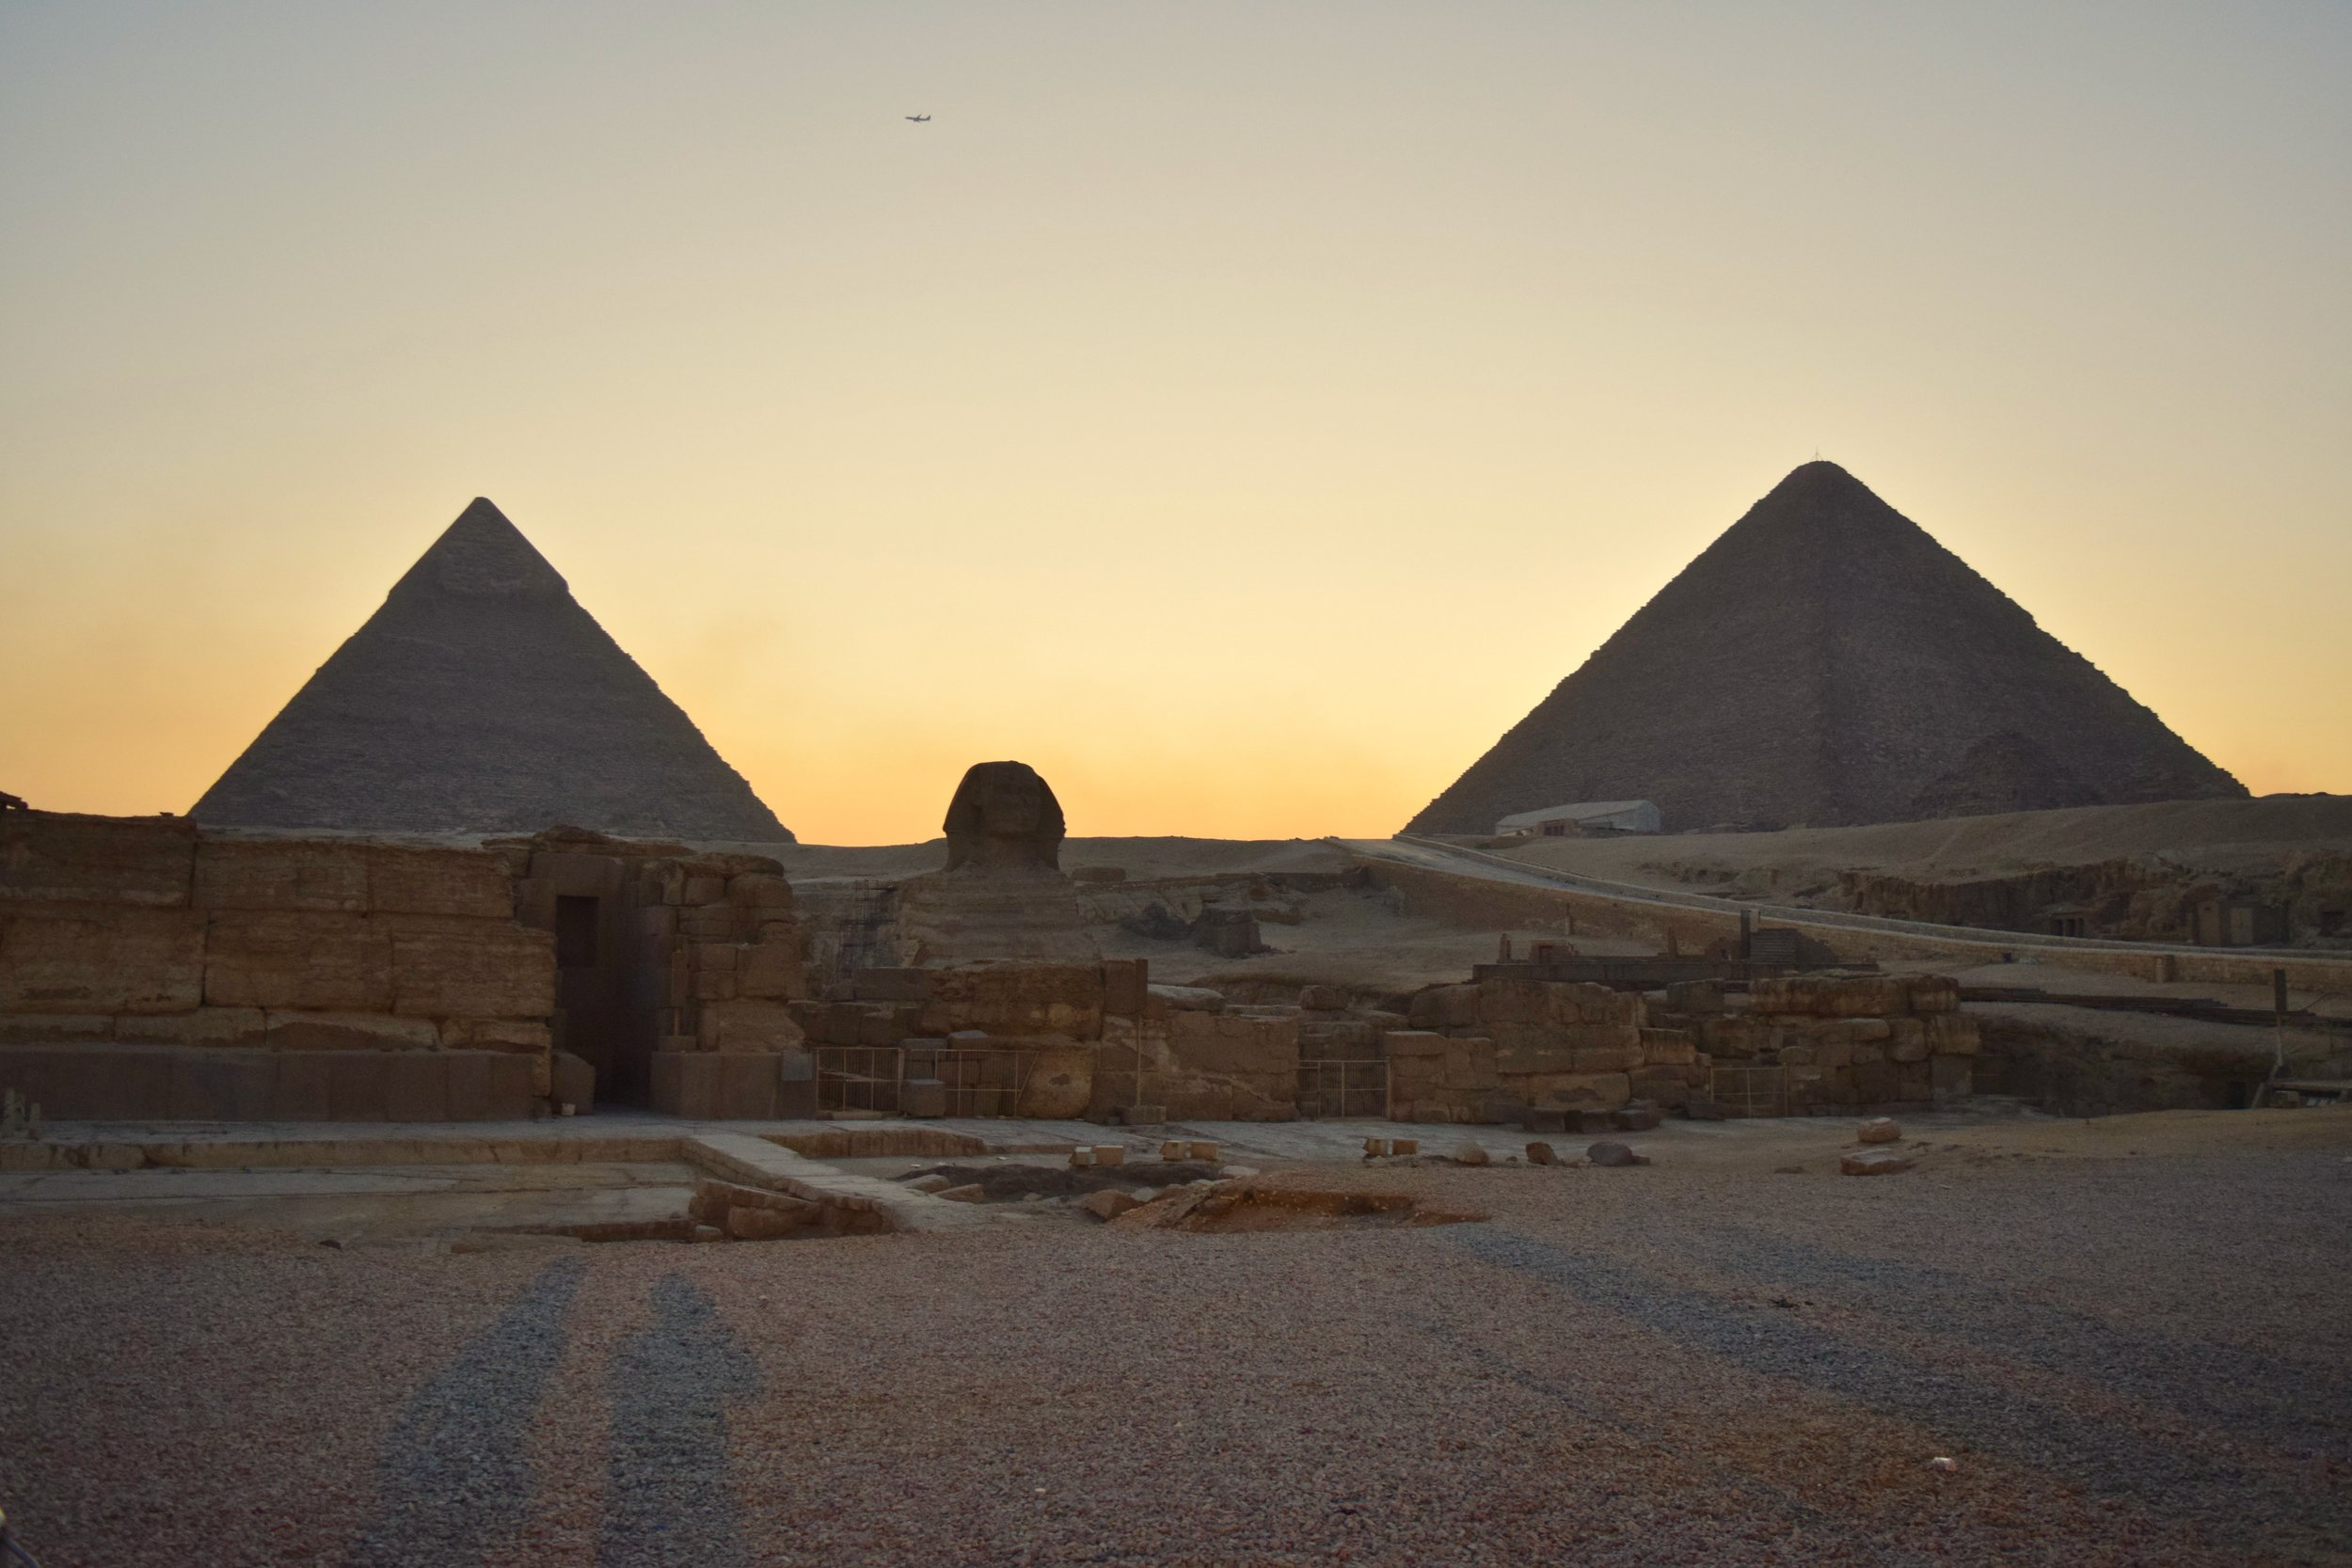 Pyramids and Sphinx of Giza at sunset